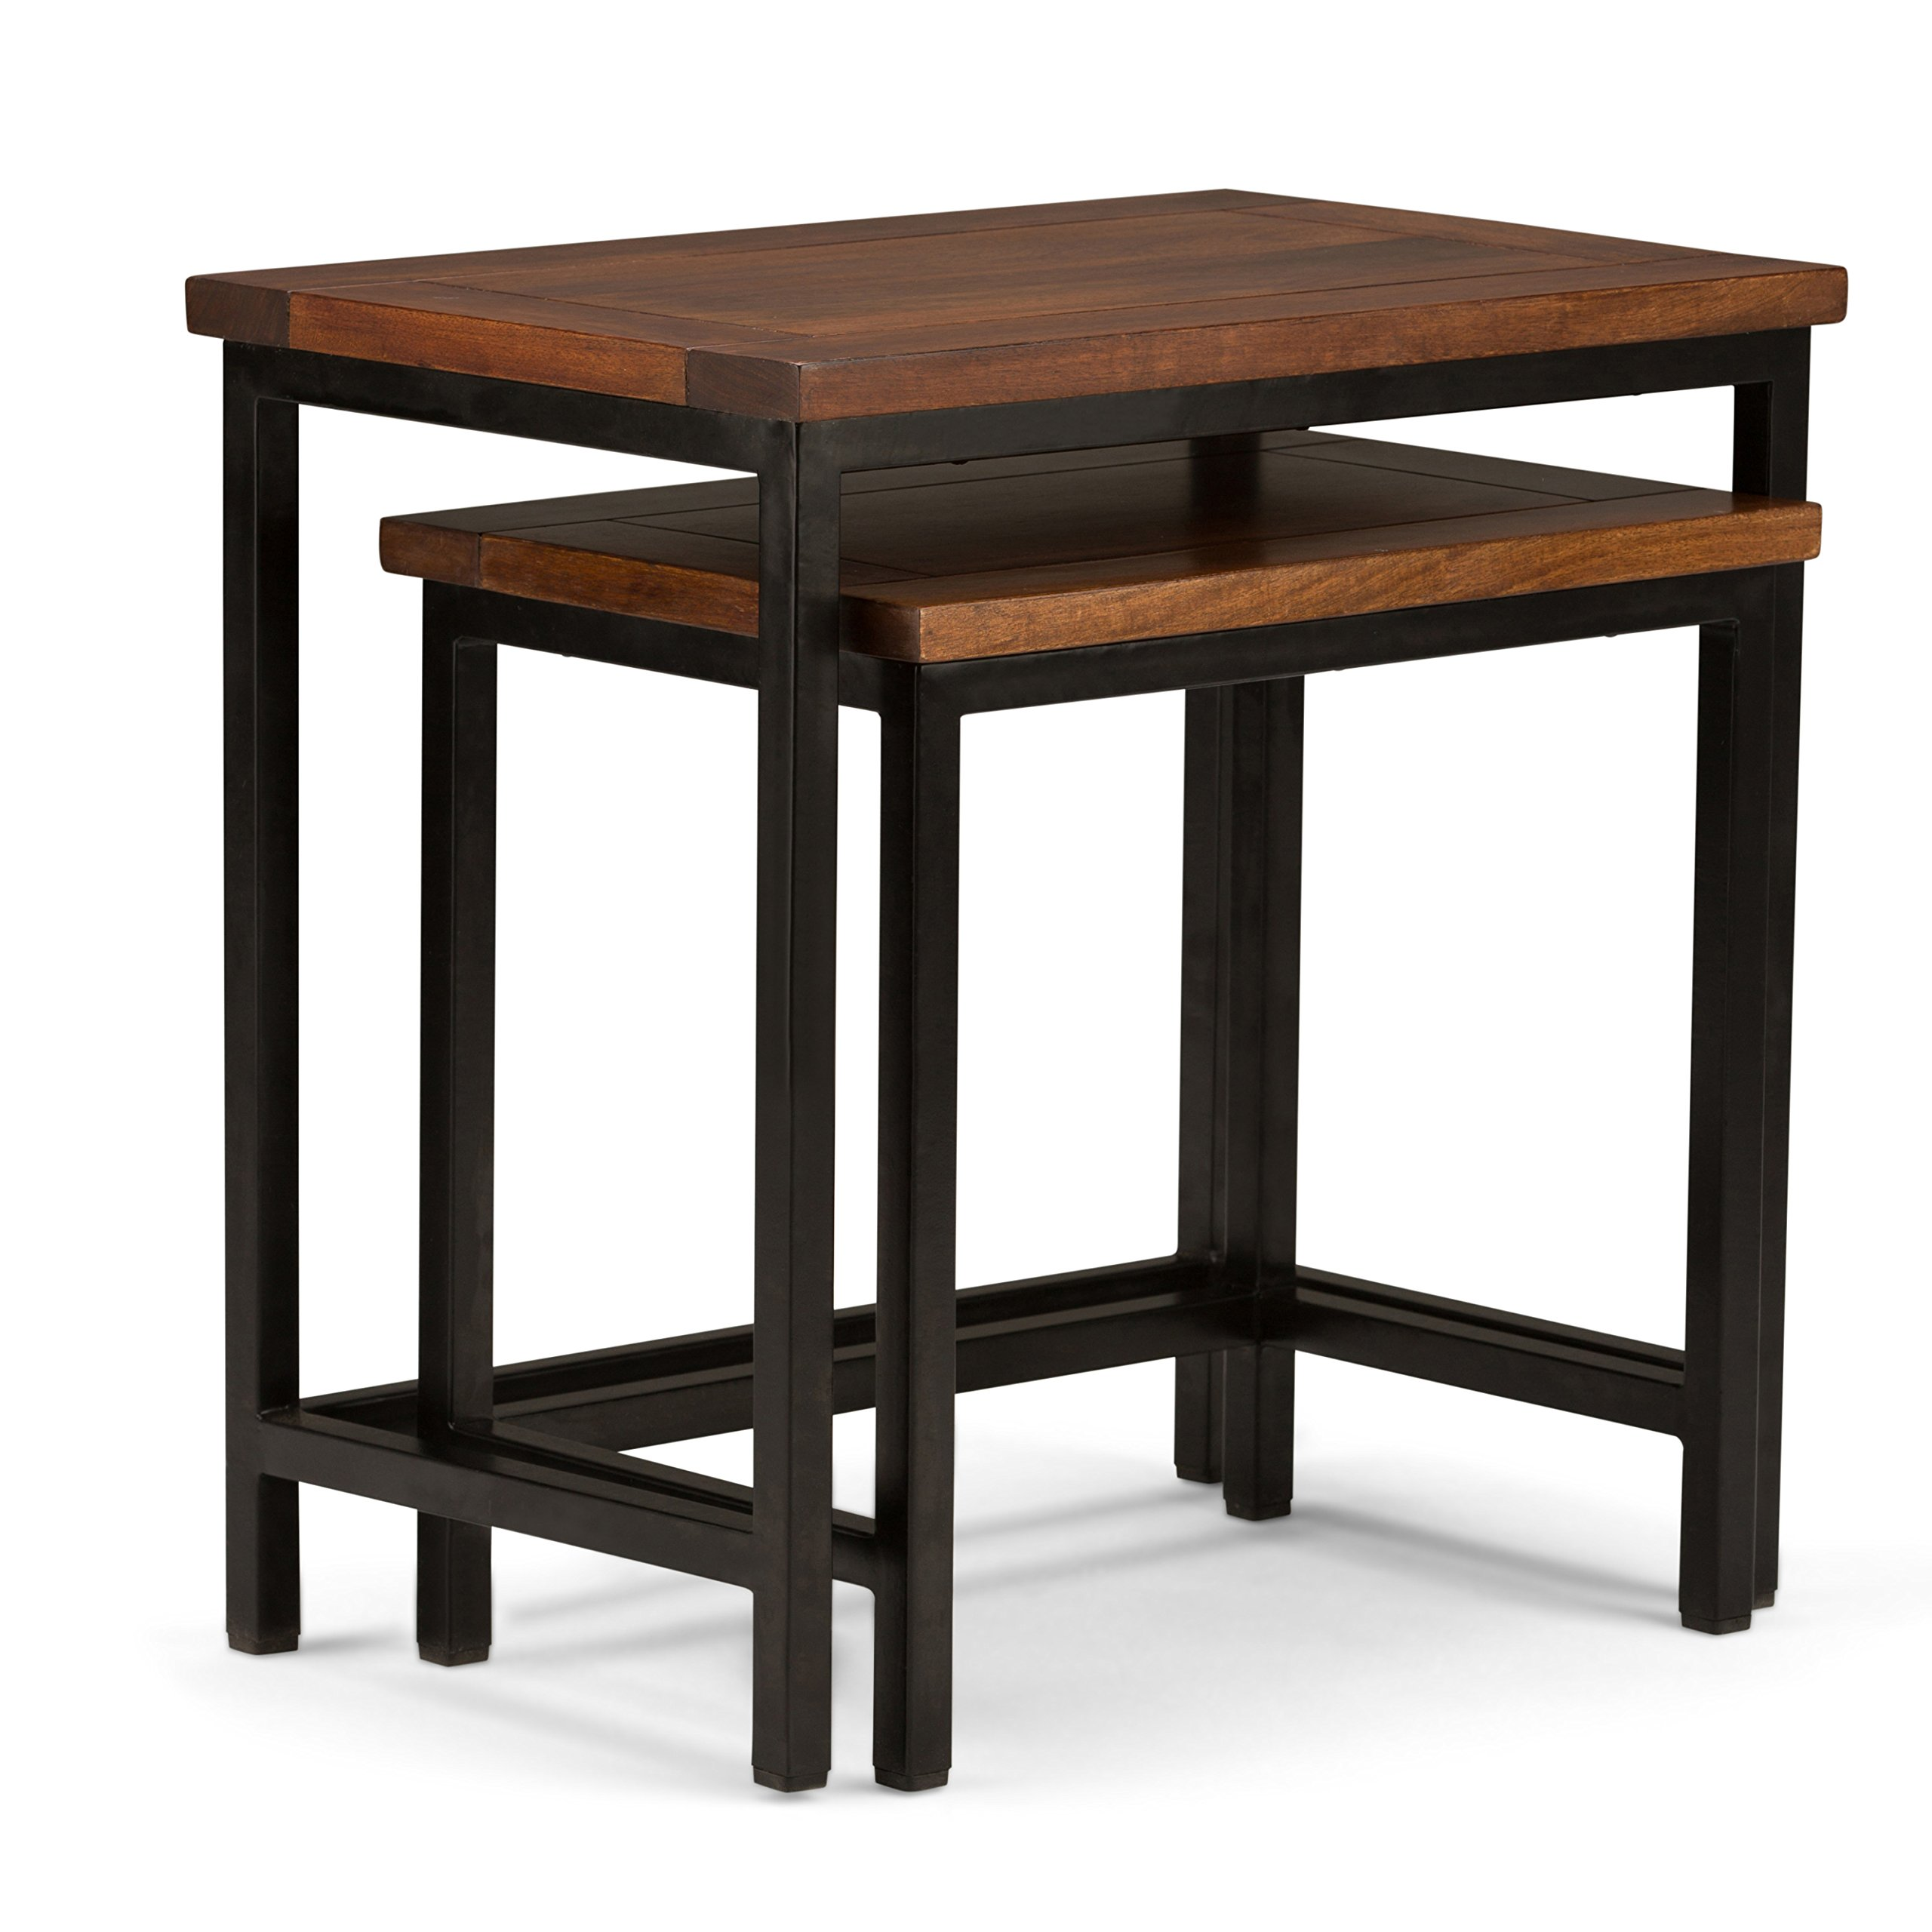 Simpli Home 3AXCSKY-06 Skyler Solid Mango Wood and Metal 25 inch Wide Modern Industrial Nesting 2 Pc Side Table in Dark Cognac Brown, Fully Assembled by Simpli Home